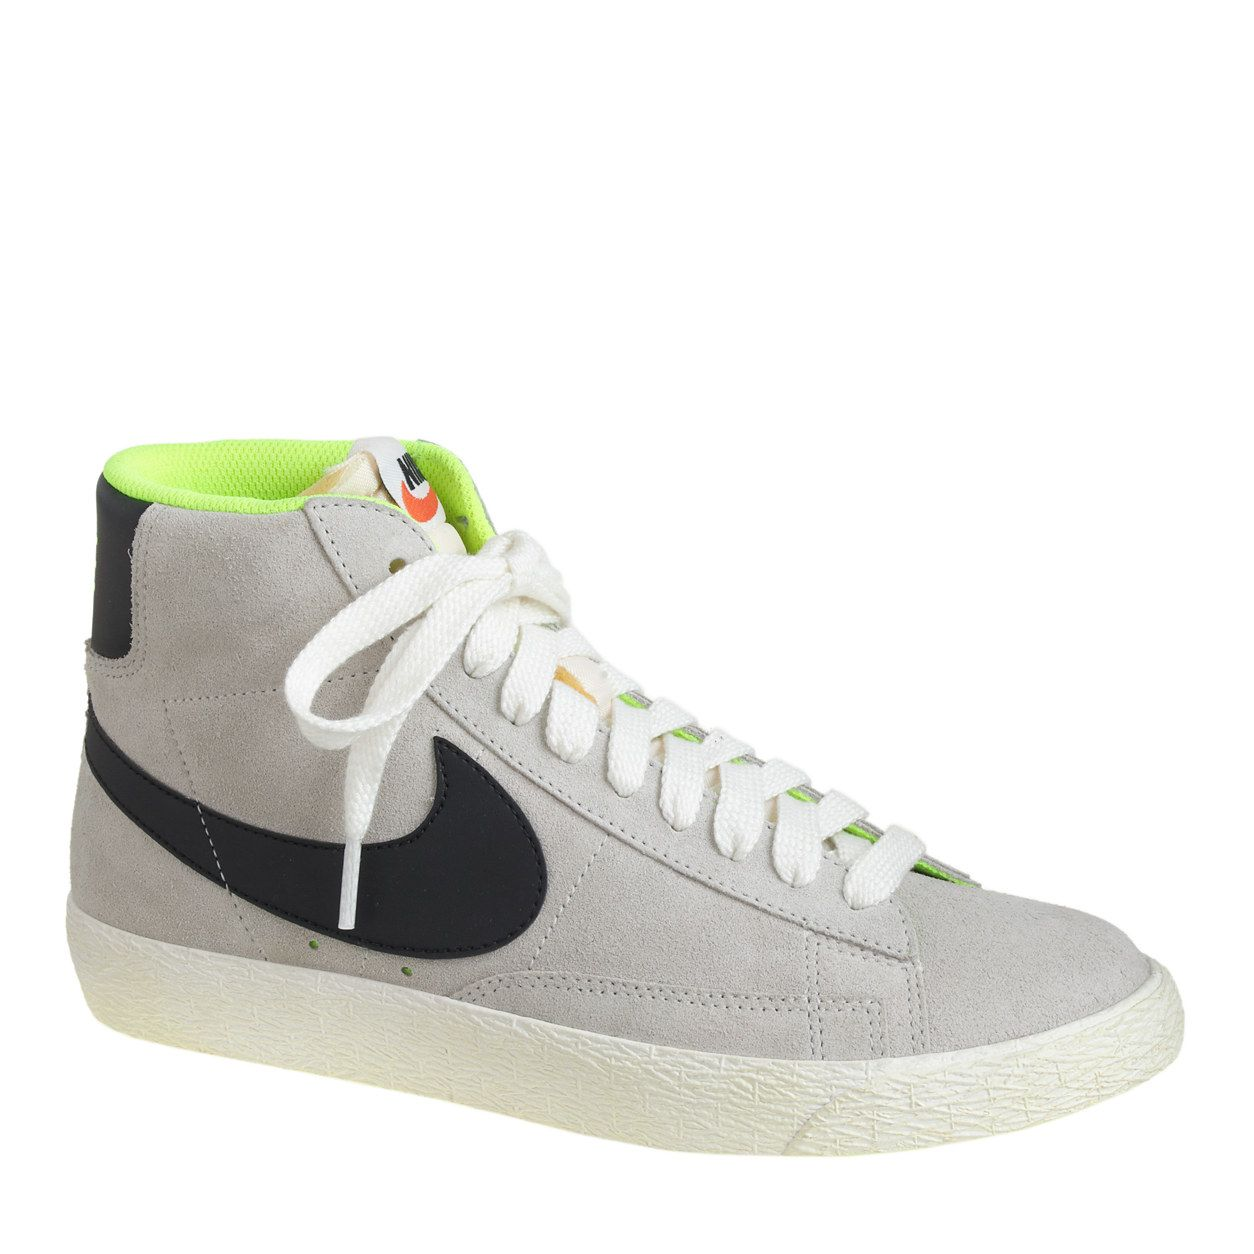 nike blazer orange beige teal bedroom